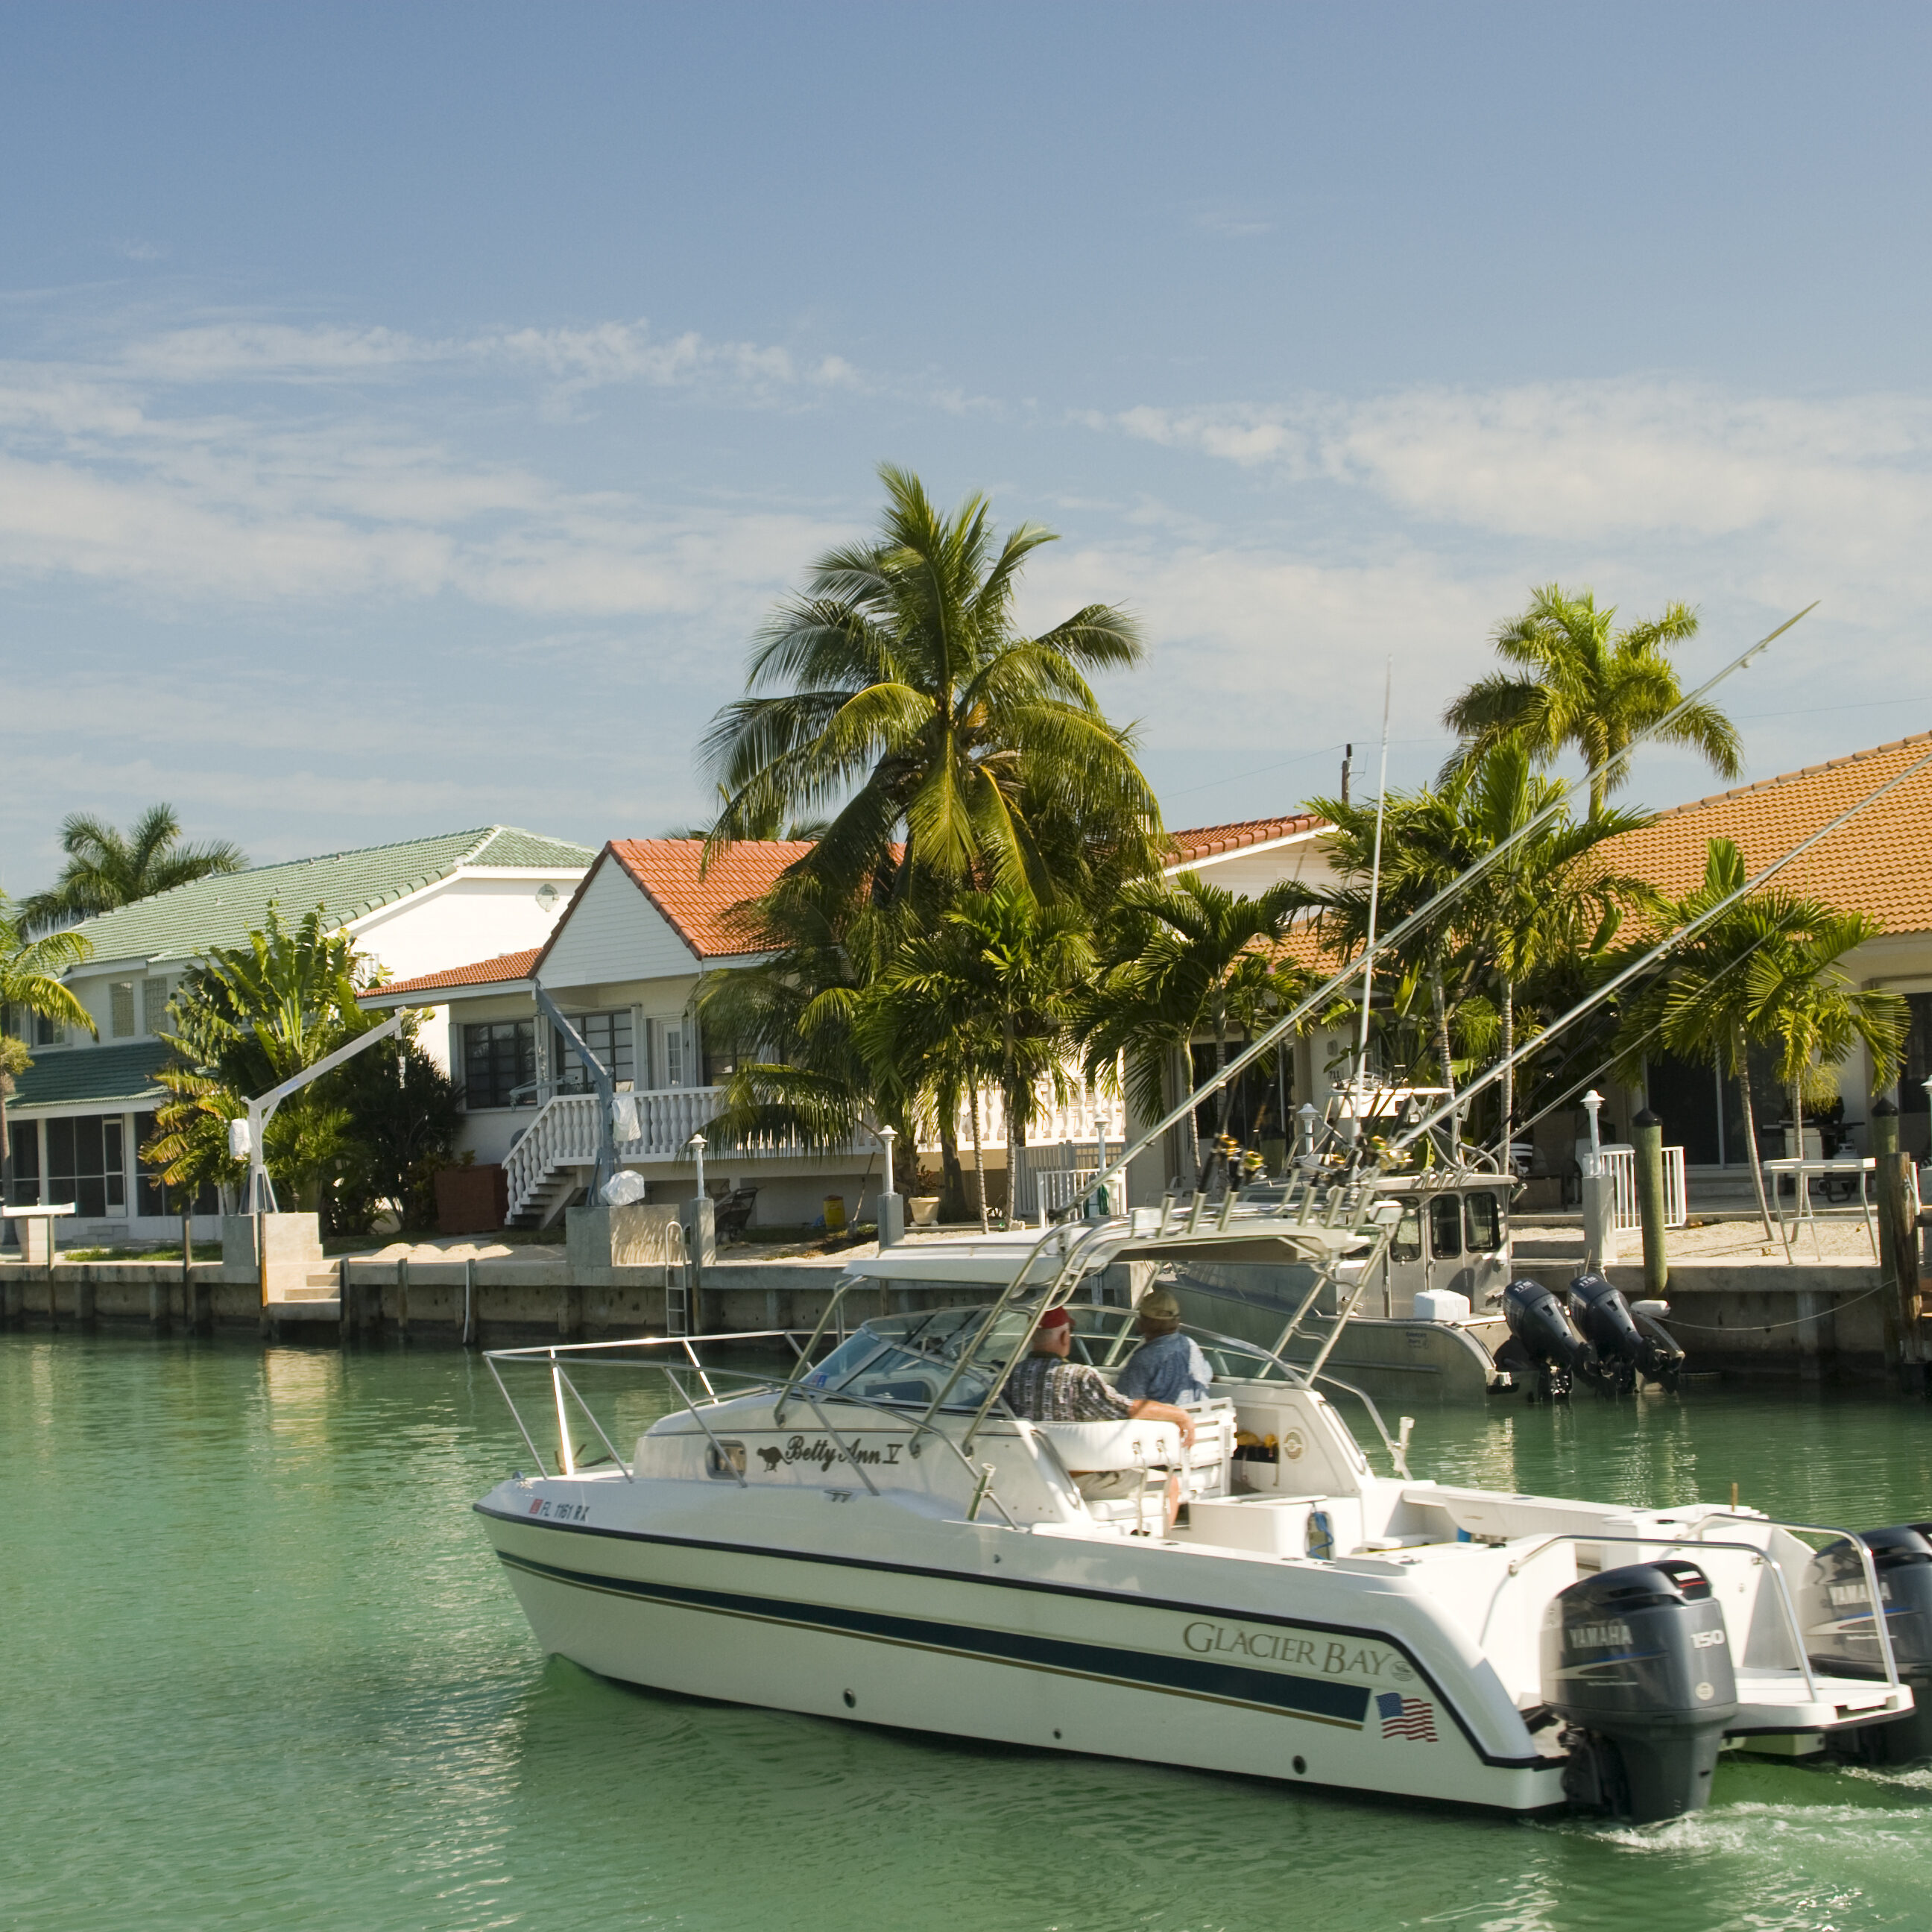 editorial leisure boat cruising canal in florida keys by houses